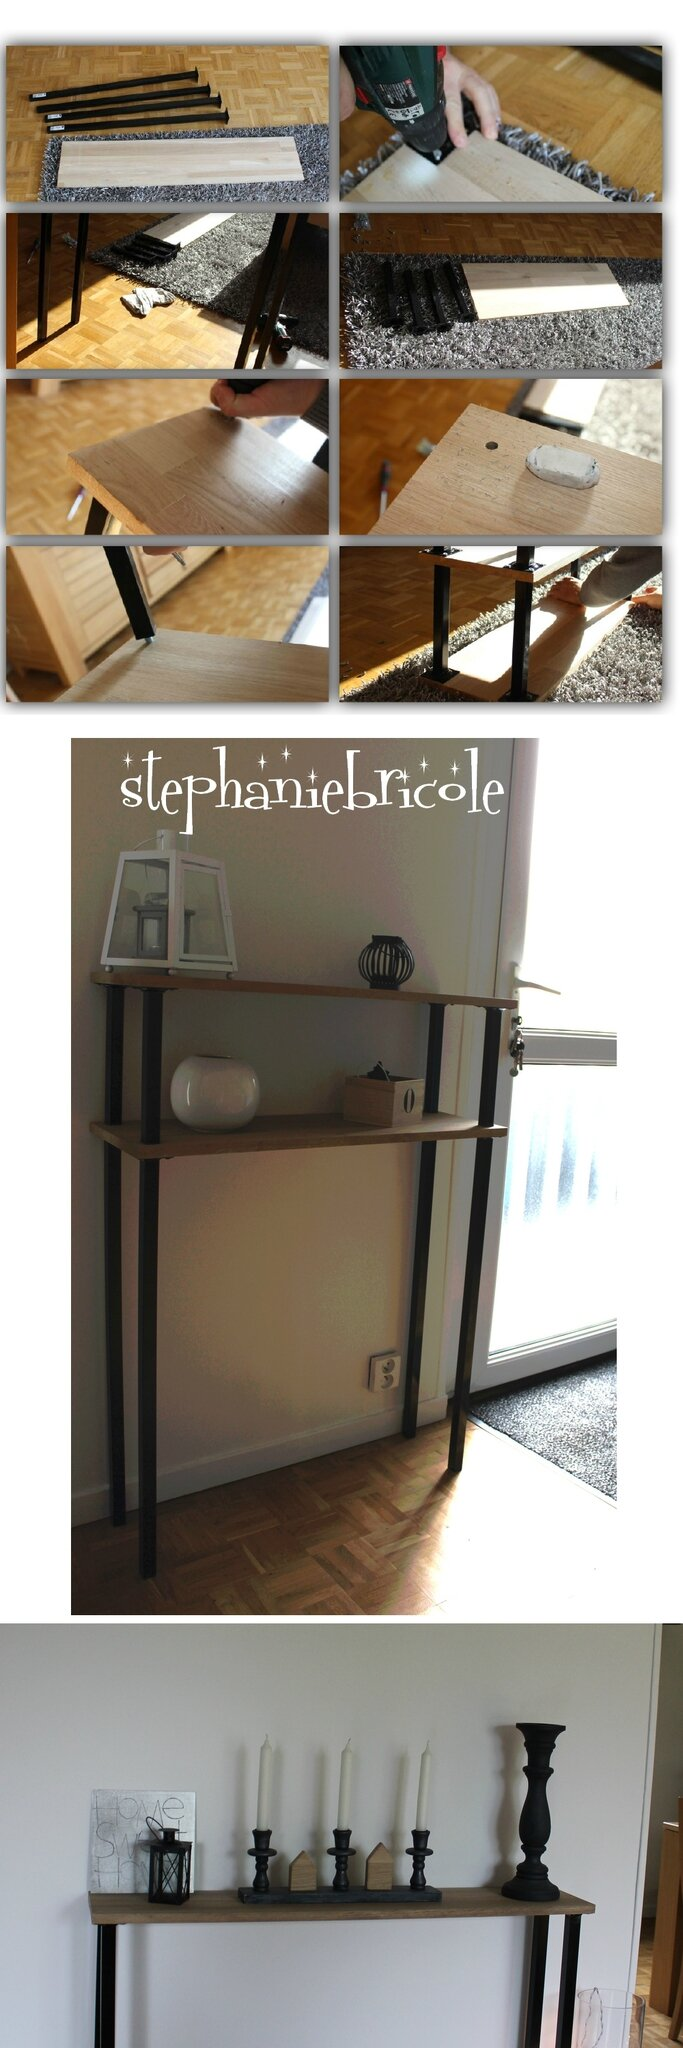 Diy d co faire un meuble console au style industriel soi for Deco industrielle pas cher